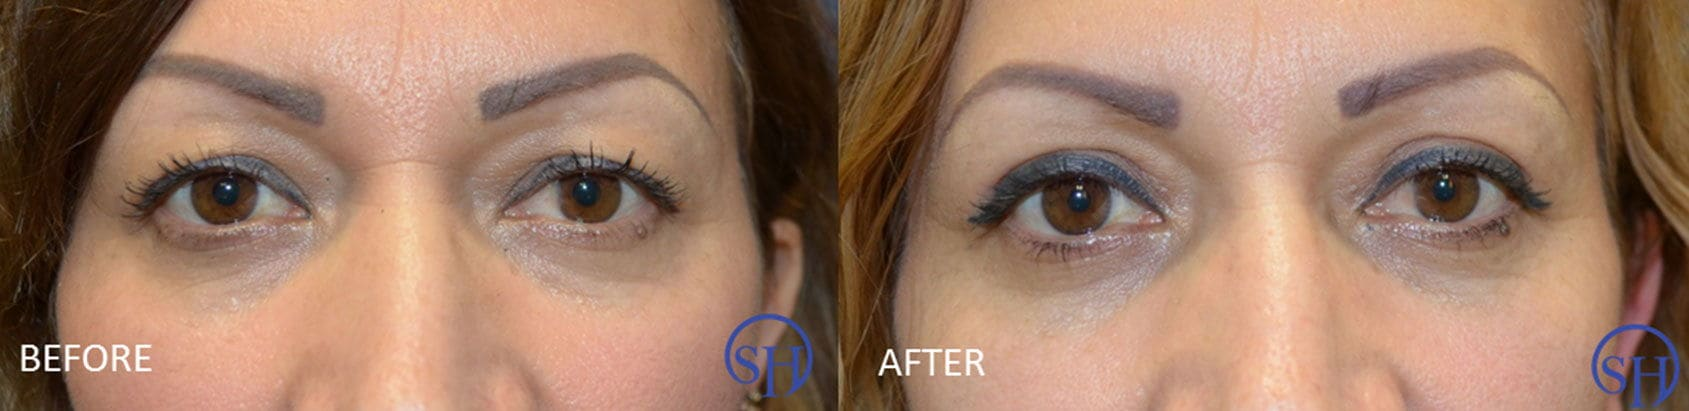 Before and after photo of eyelid lift.